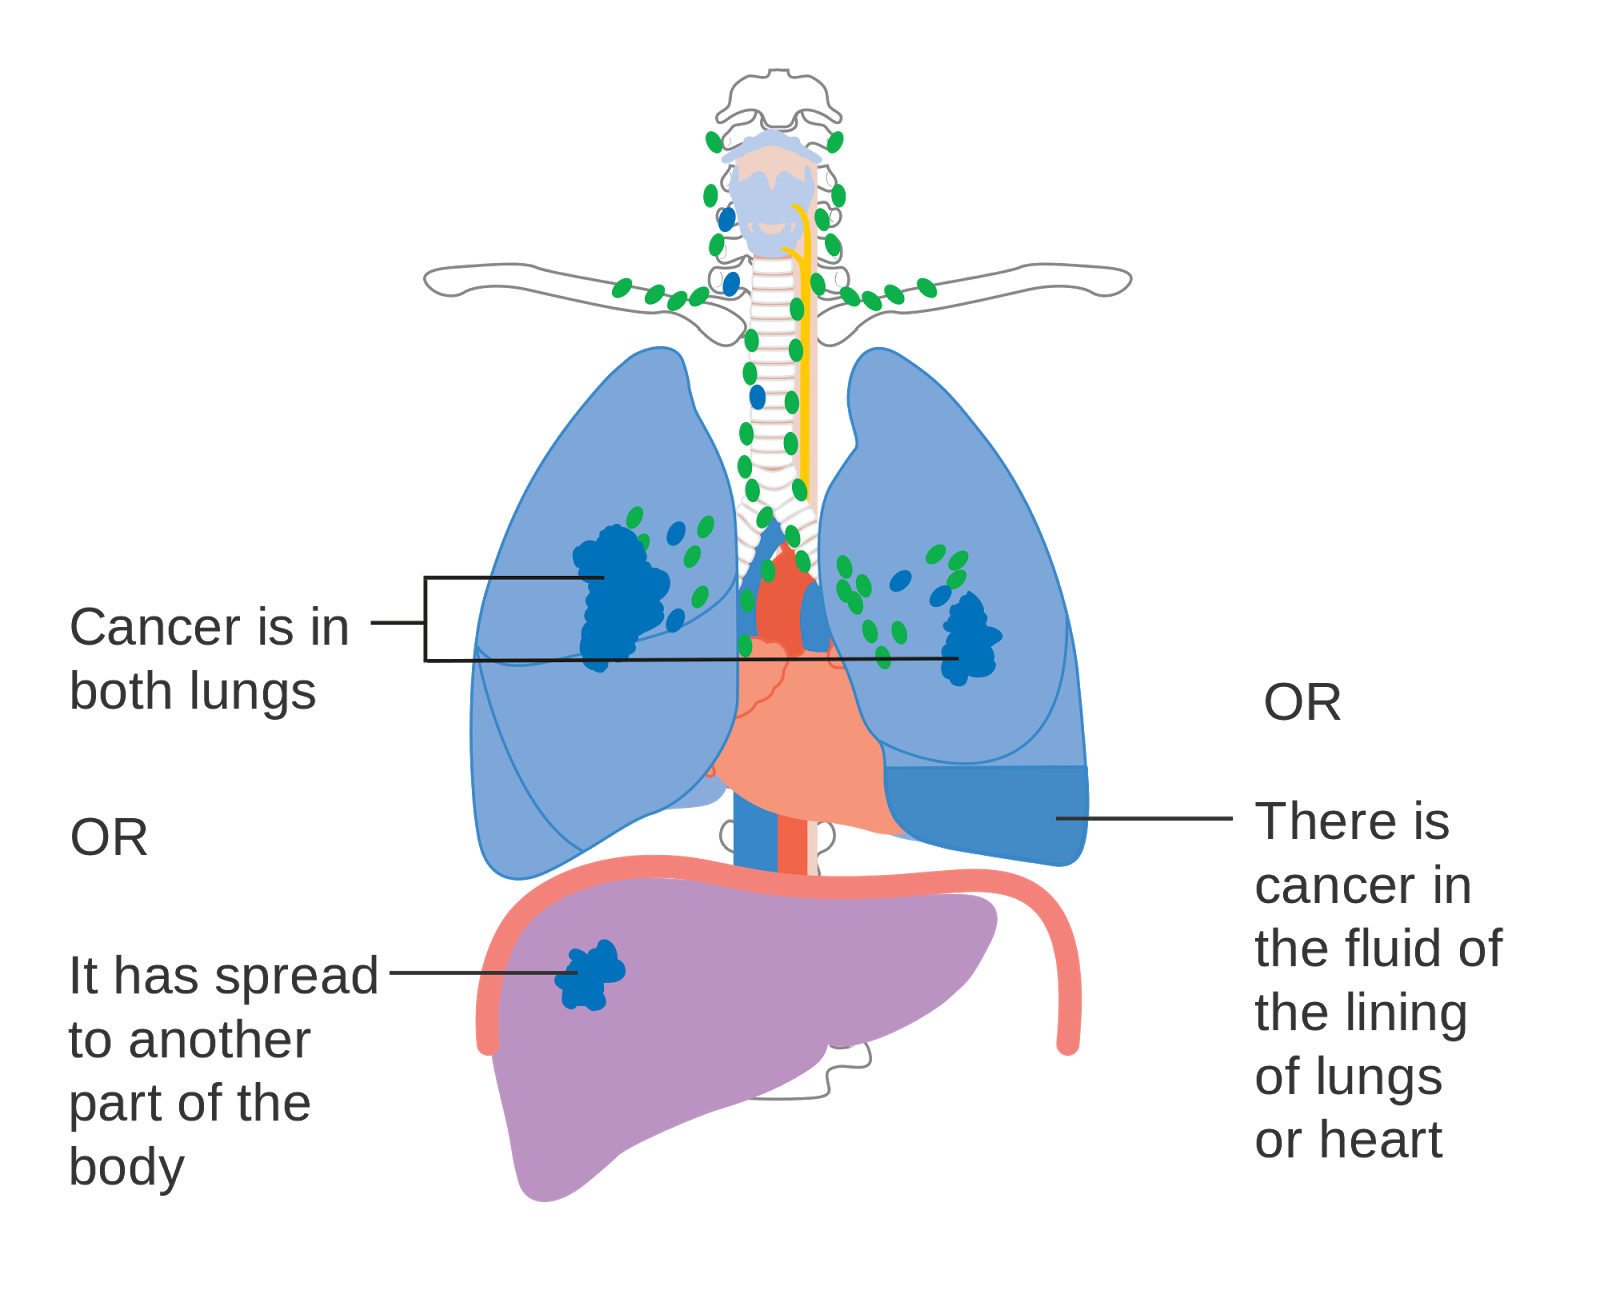 a scientific description of the cancer cells progression to infiltrate the lungs The pathogenesis of lung cancer is like other cancers, beginning with carcinogen-induced initiation events, followed by a long period of promotion and progression in a multistep process  see cancer genetics and cancer biology chapters for a description of how mutations like these can cause cancer.